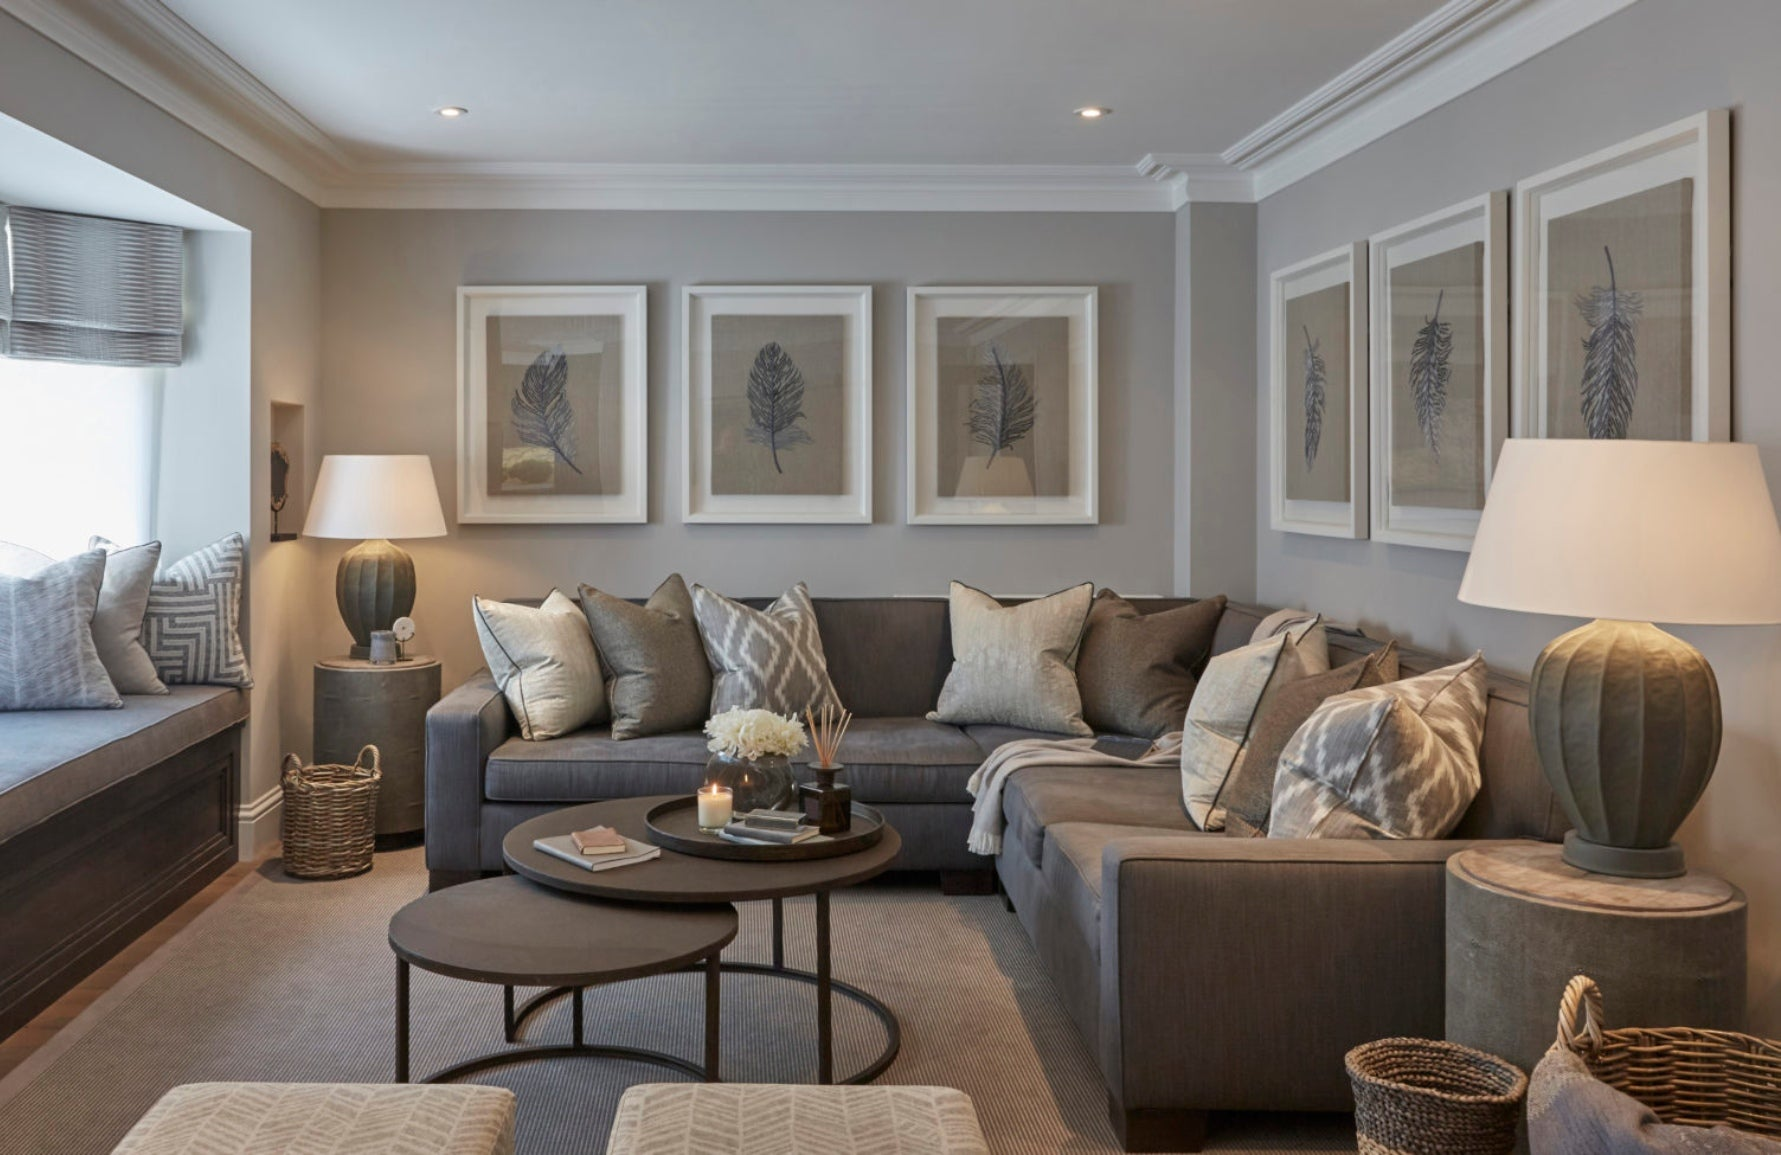 Sophie Paterson on Mastering Rustic Chic Interior Design - LuxDeco Style Guide